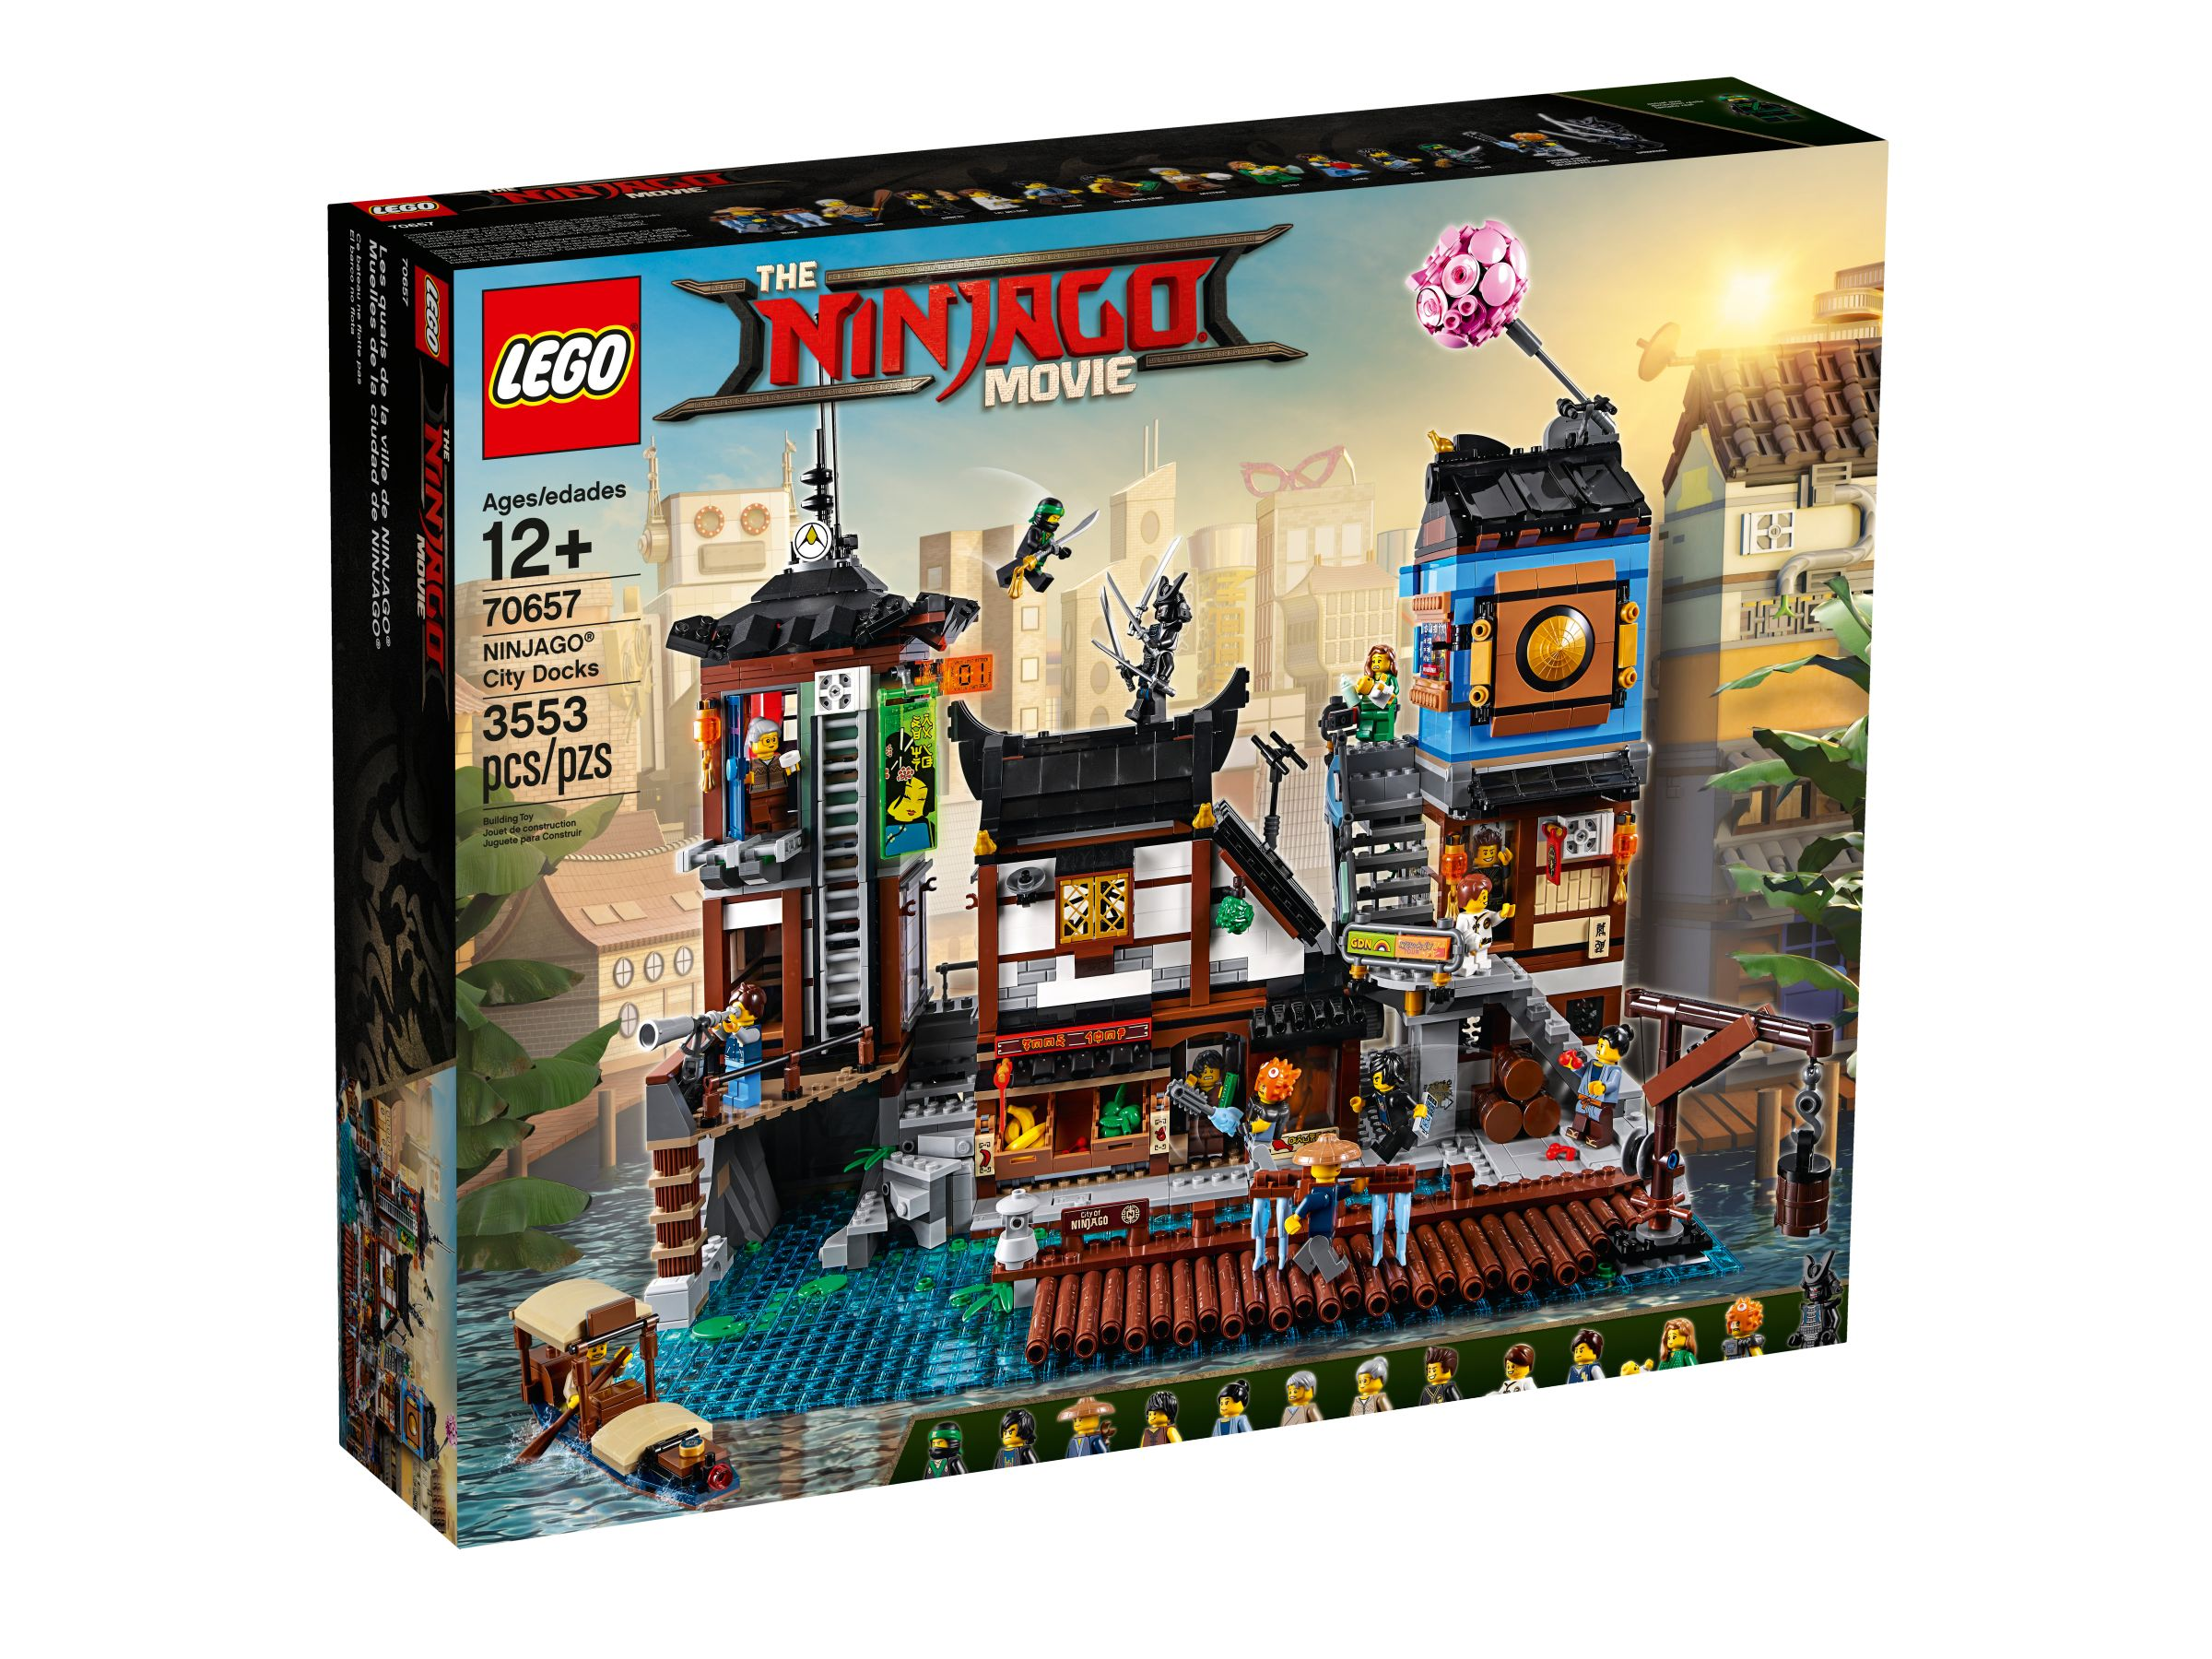 LEGO The LEGO Ninjago Movie 70657 Ninjago City Hafen LEGO_70657_alt1.jpg